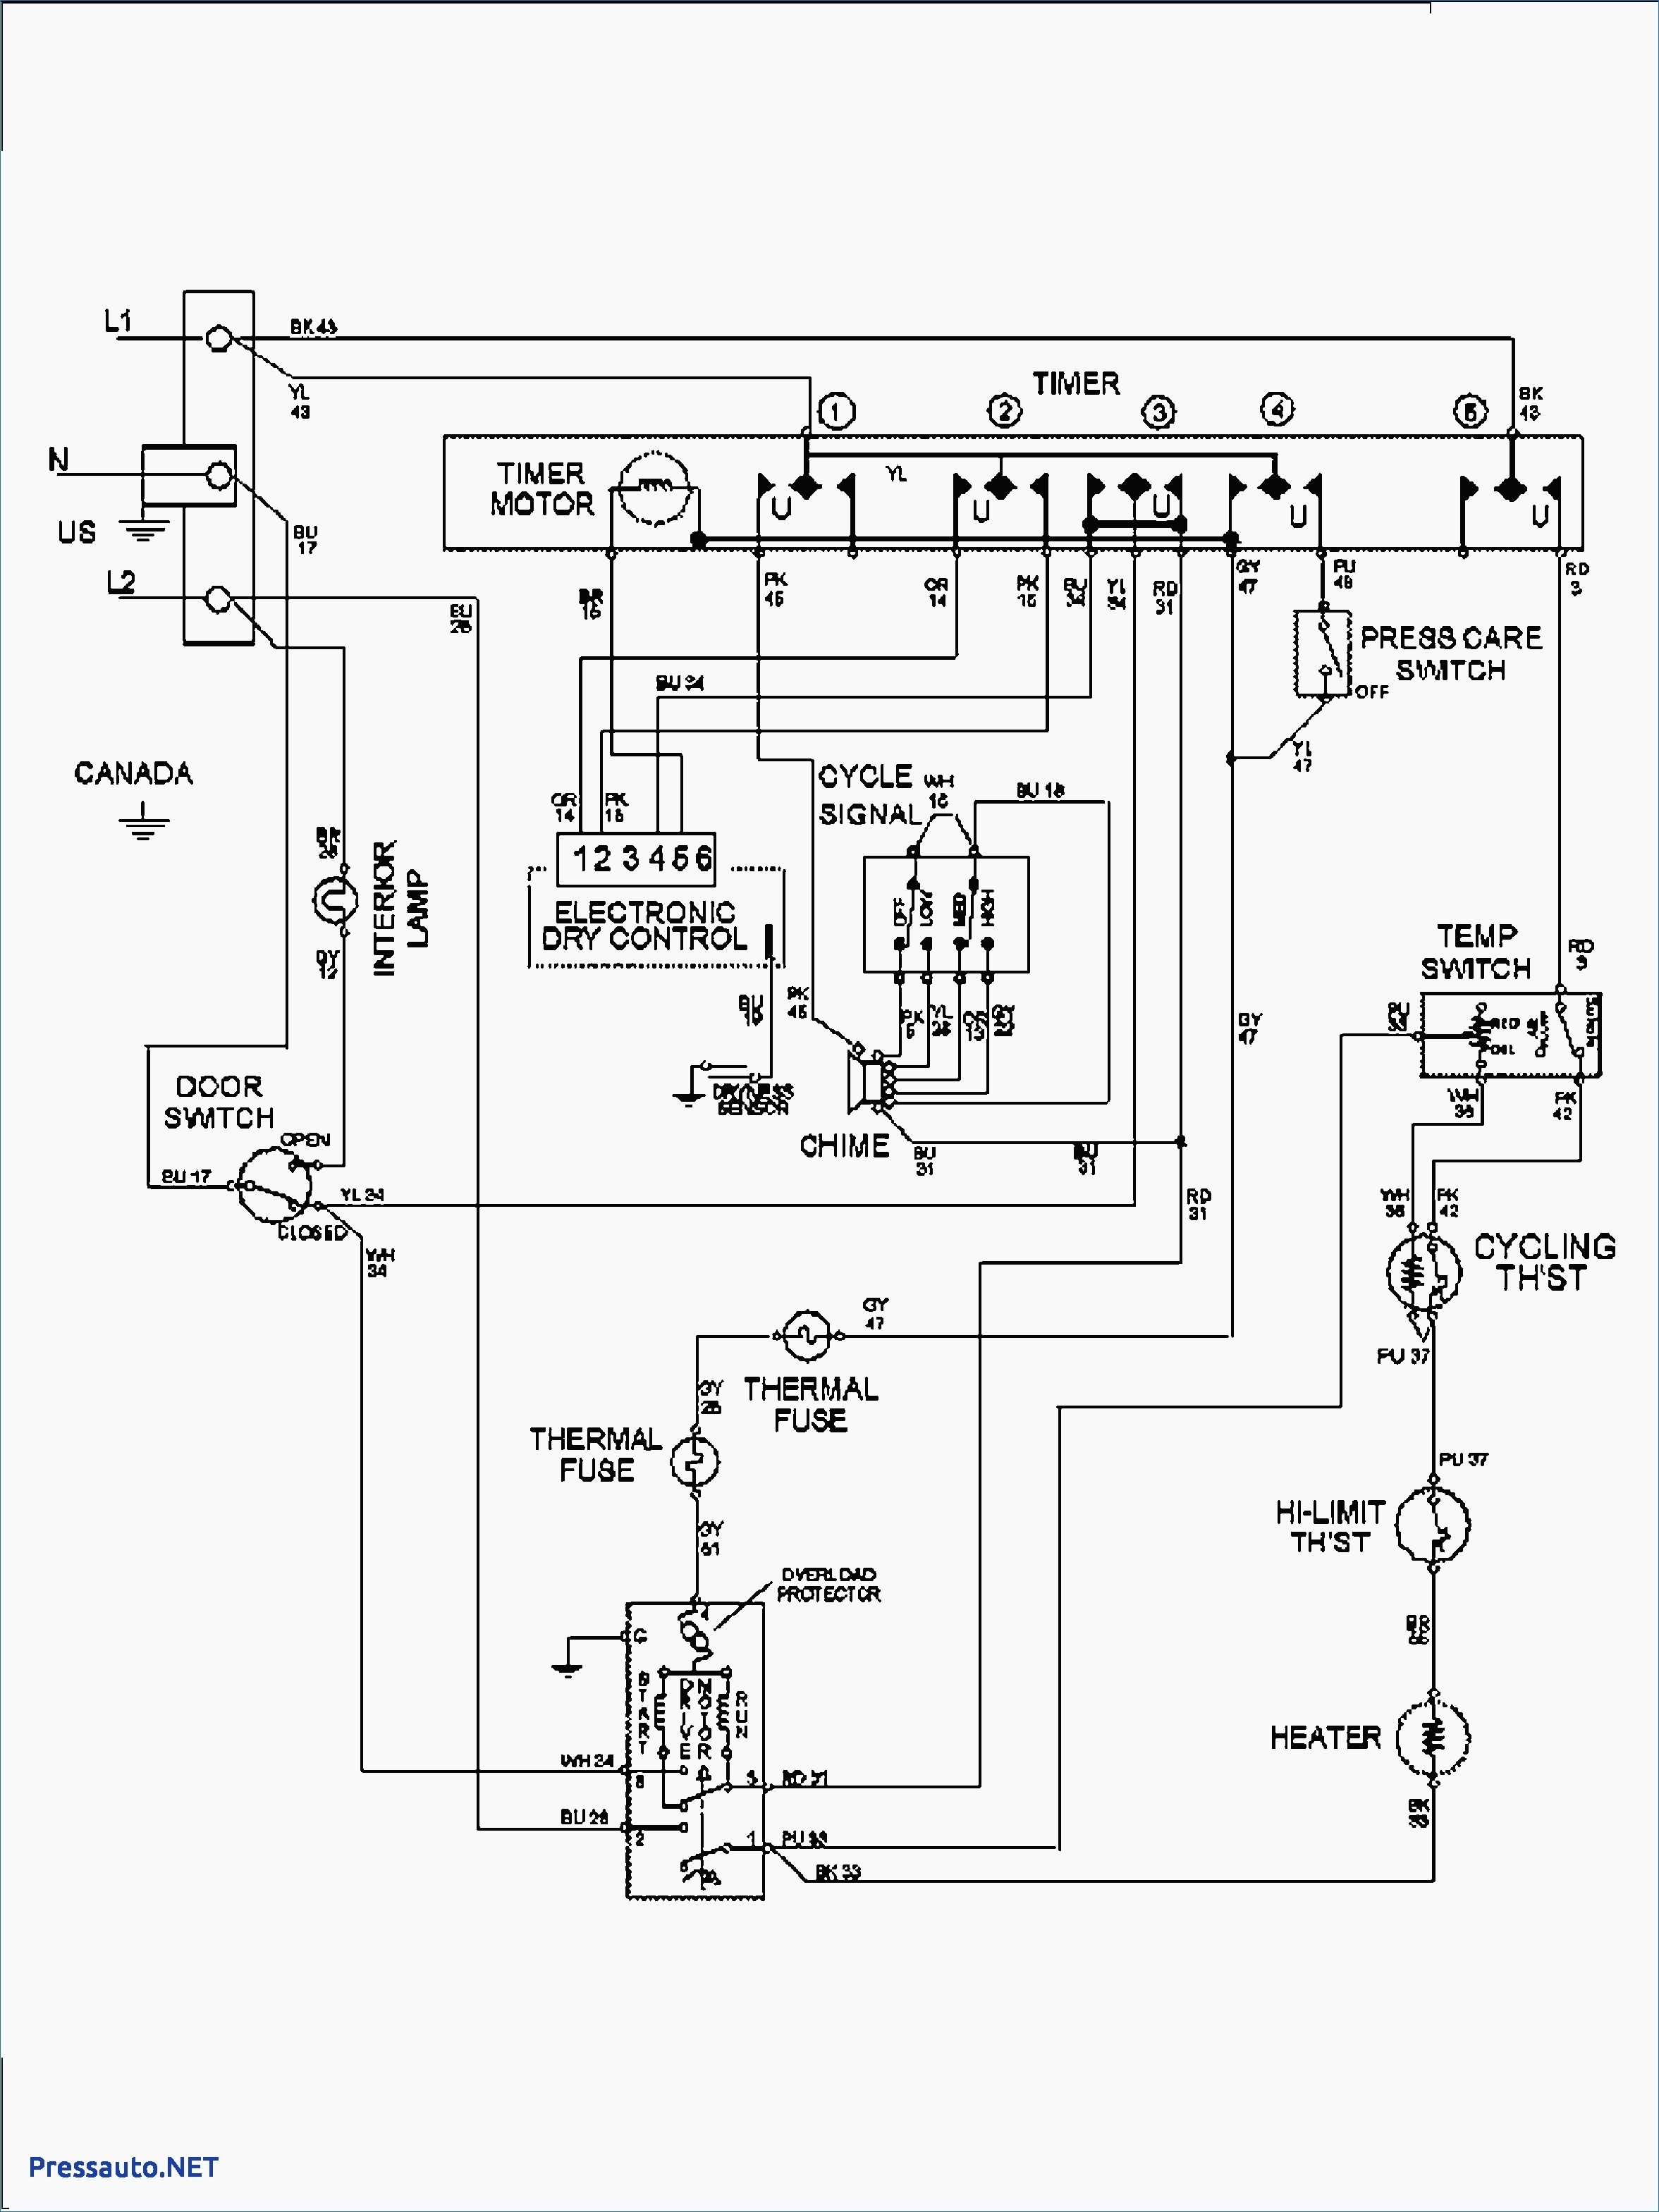 wiring diagram whirlpool dryer cg2951xyw4